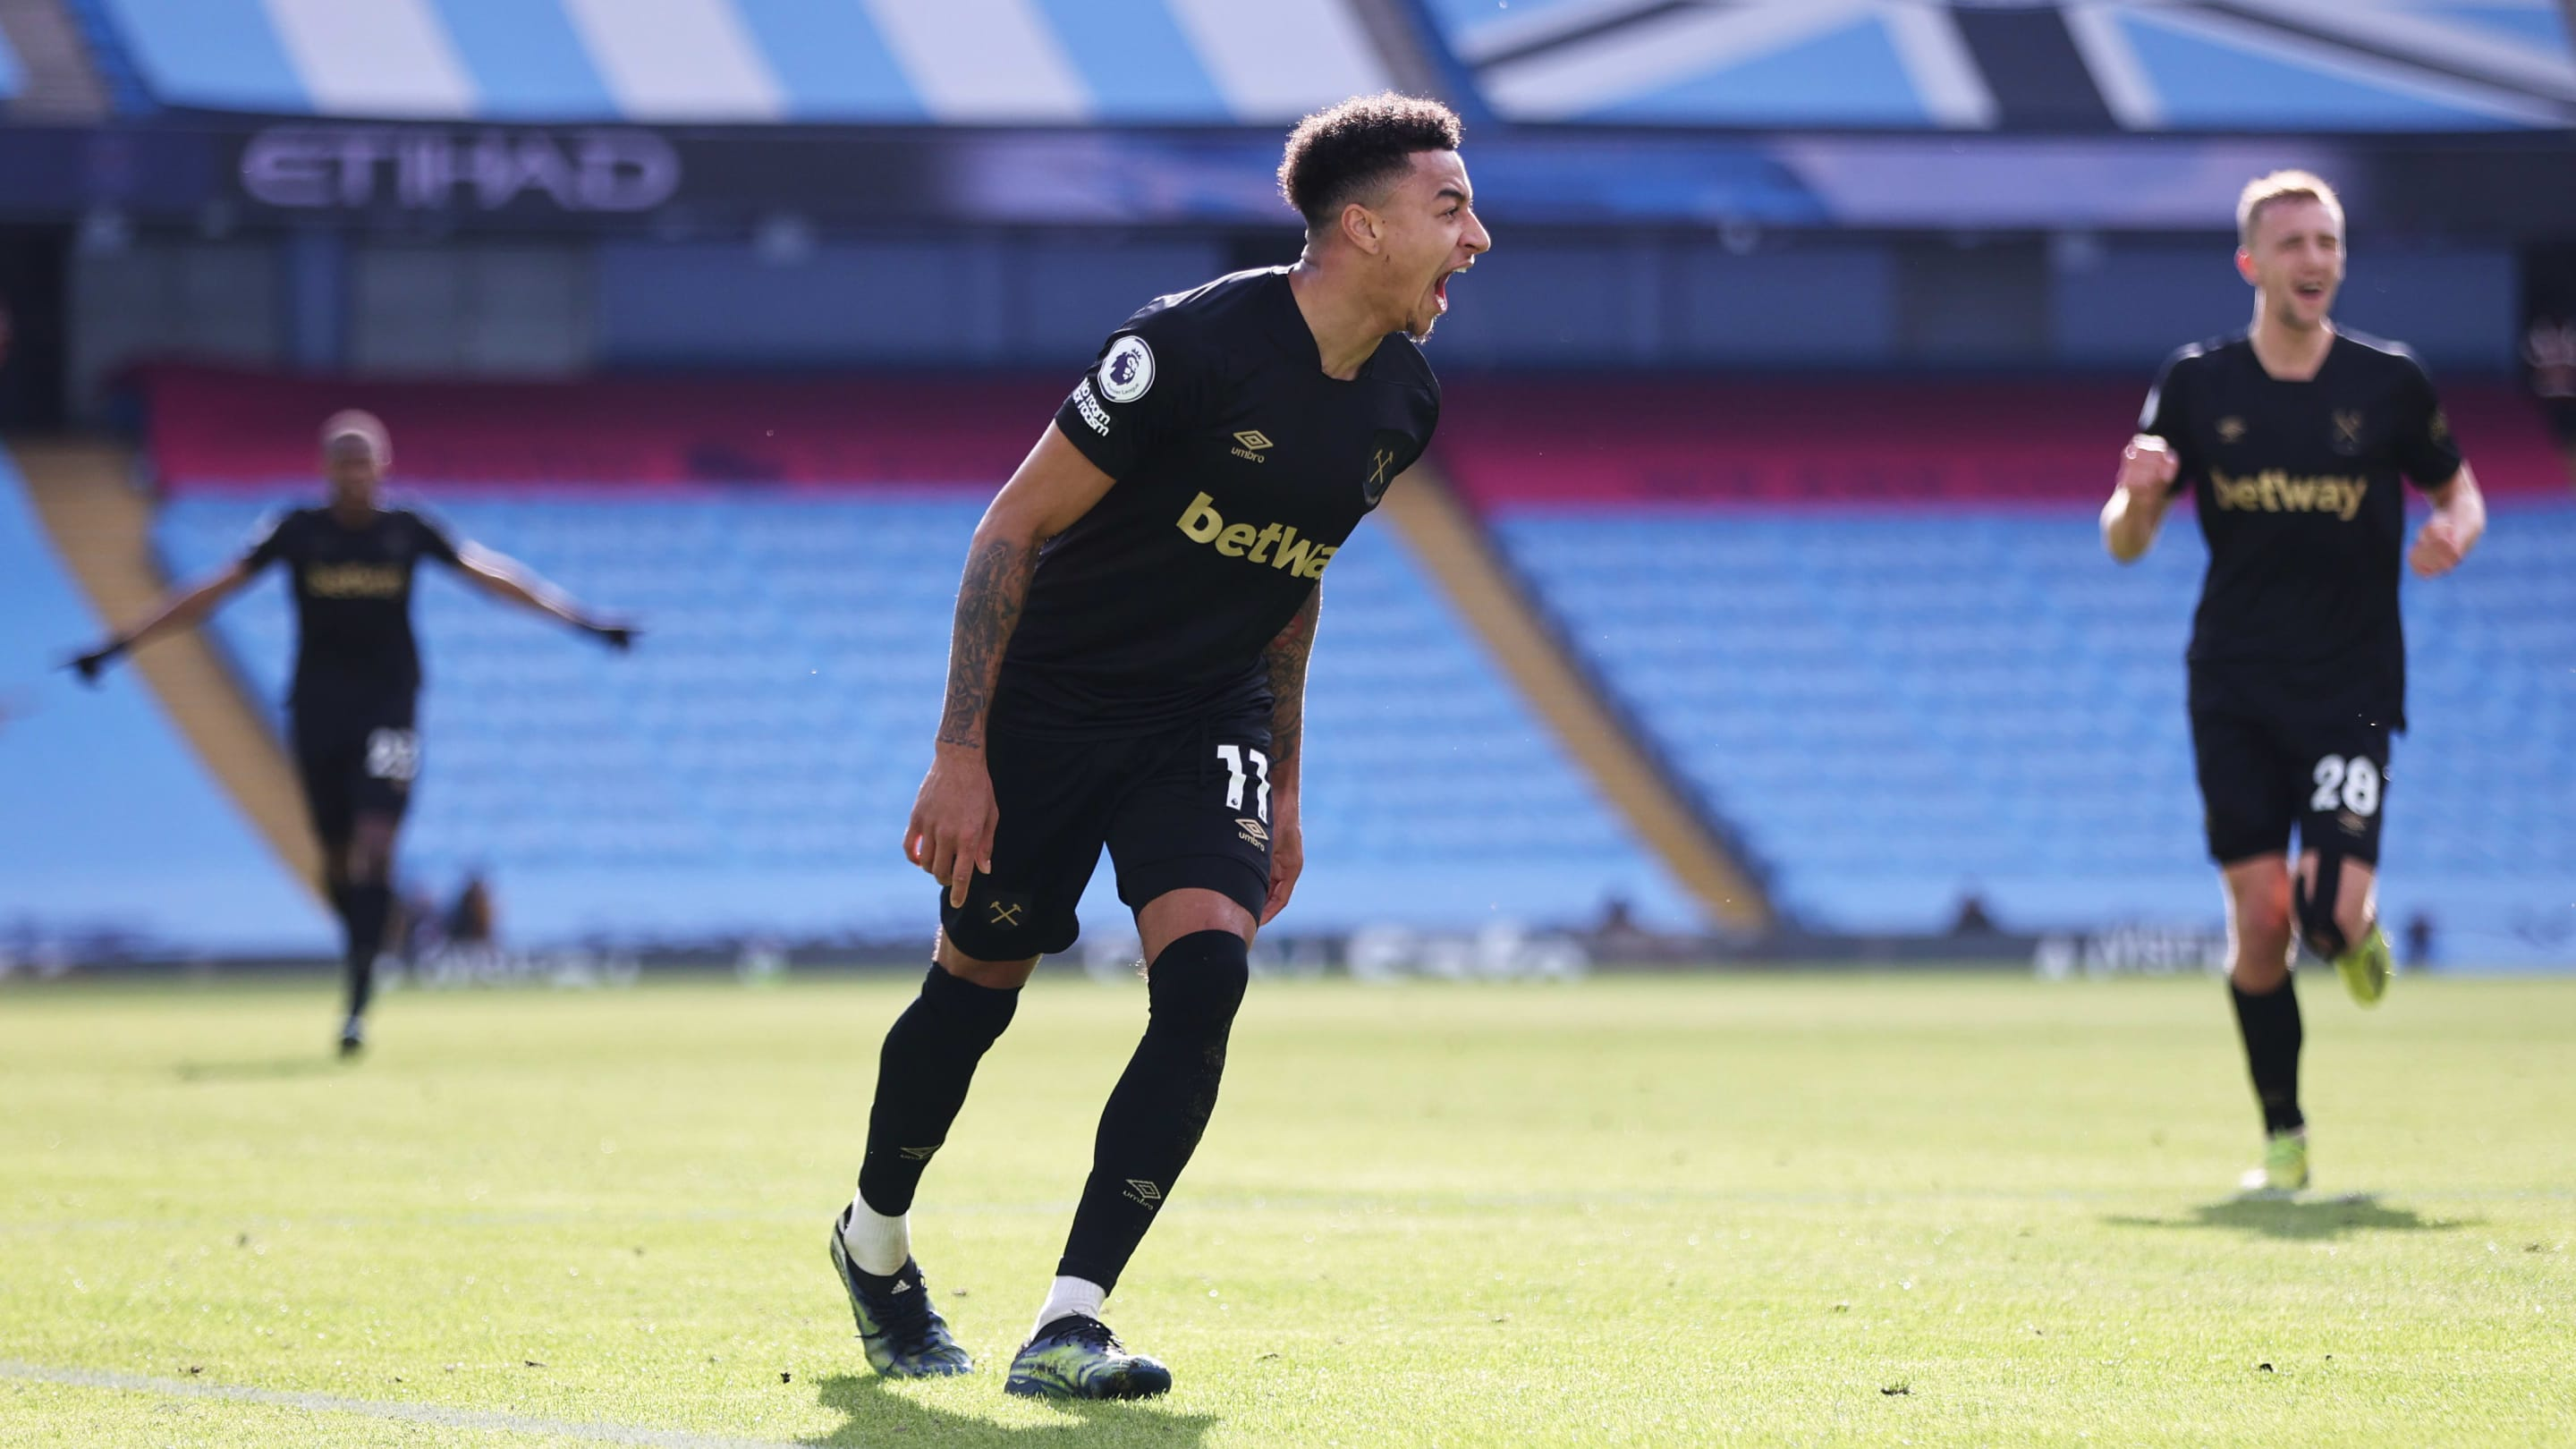 <p>Premier League Player of the Month nominees for February revealed thumbnail